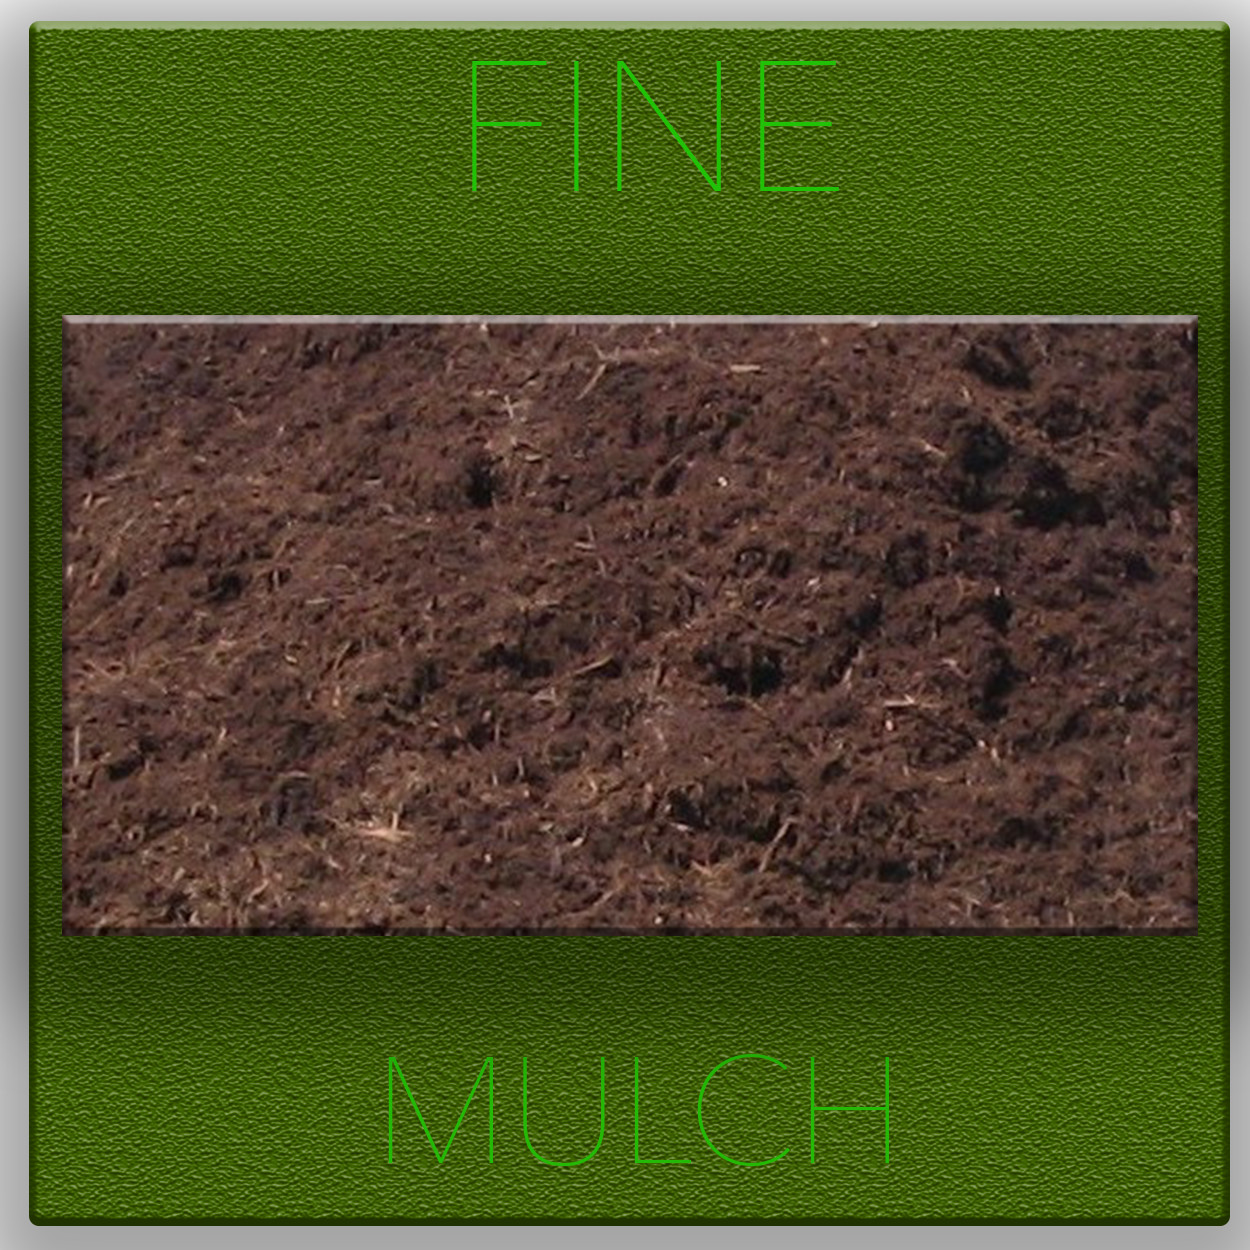 Stop weeds in flower beds -  Fine Mulch If You Re Looking On Planting A Flower Bed Fine Mulch Is Probably The